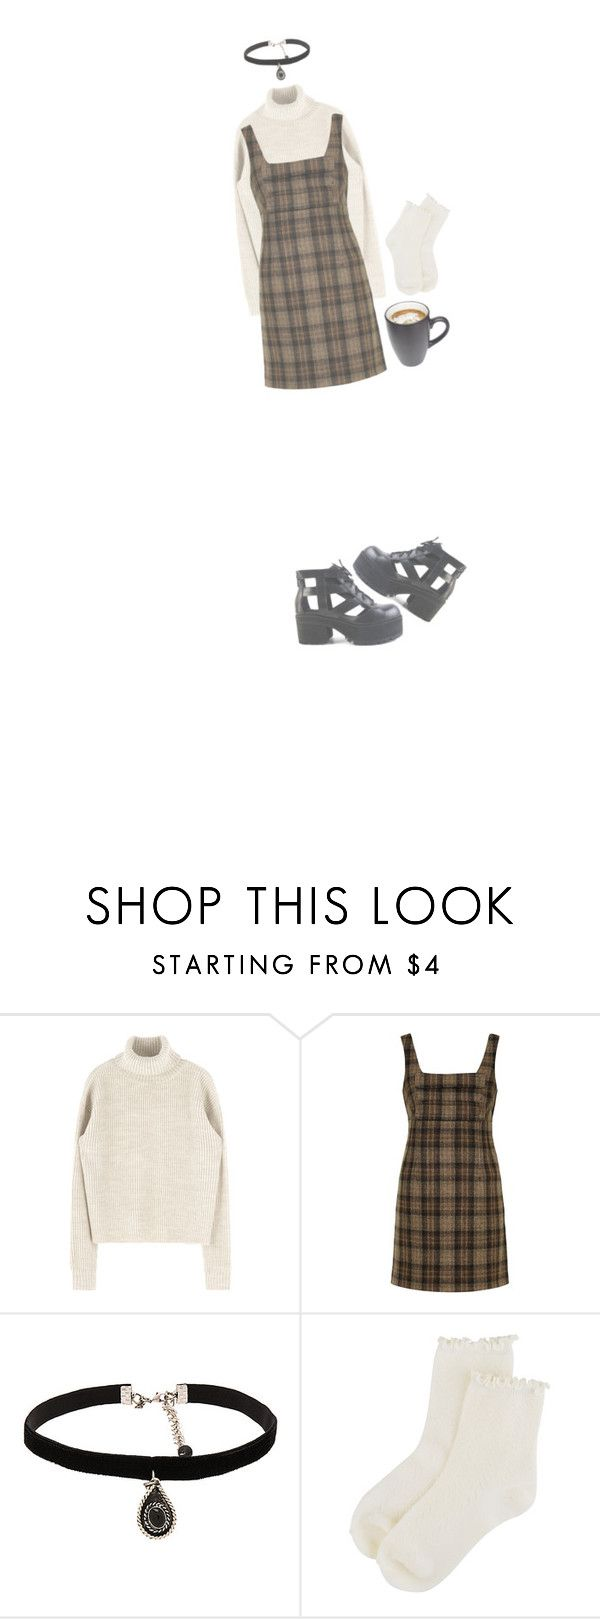 """""""Untitled #1532"""" by cerycat ❤ liked on Polyvore featuring Unique, Natalie B and Forever 21"""